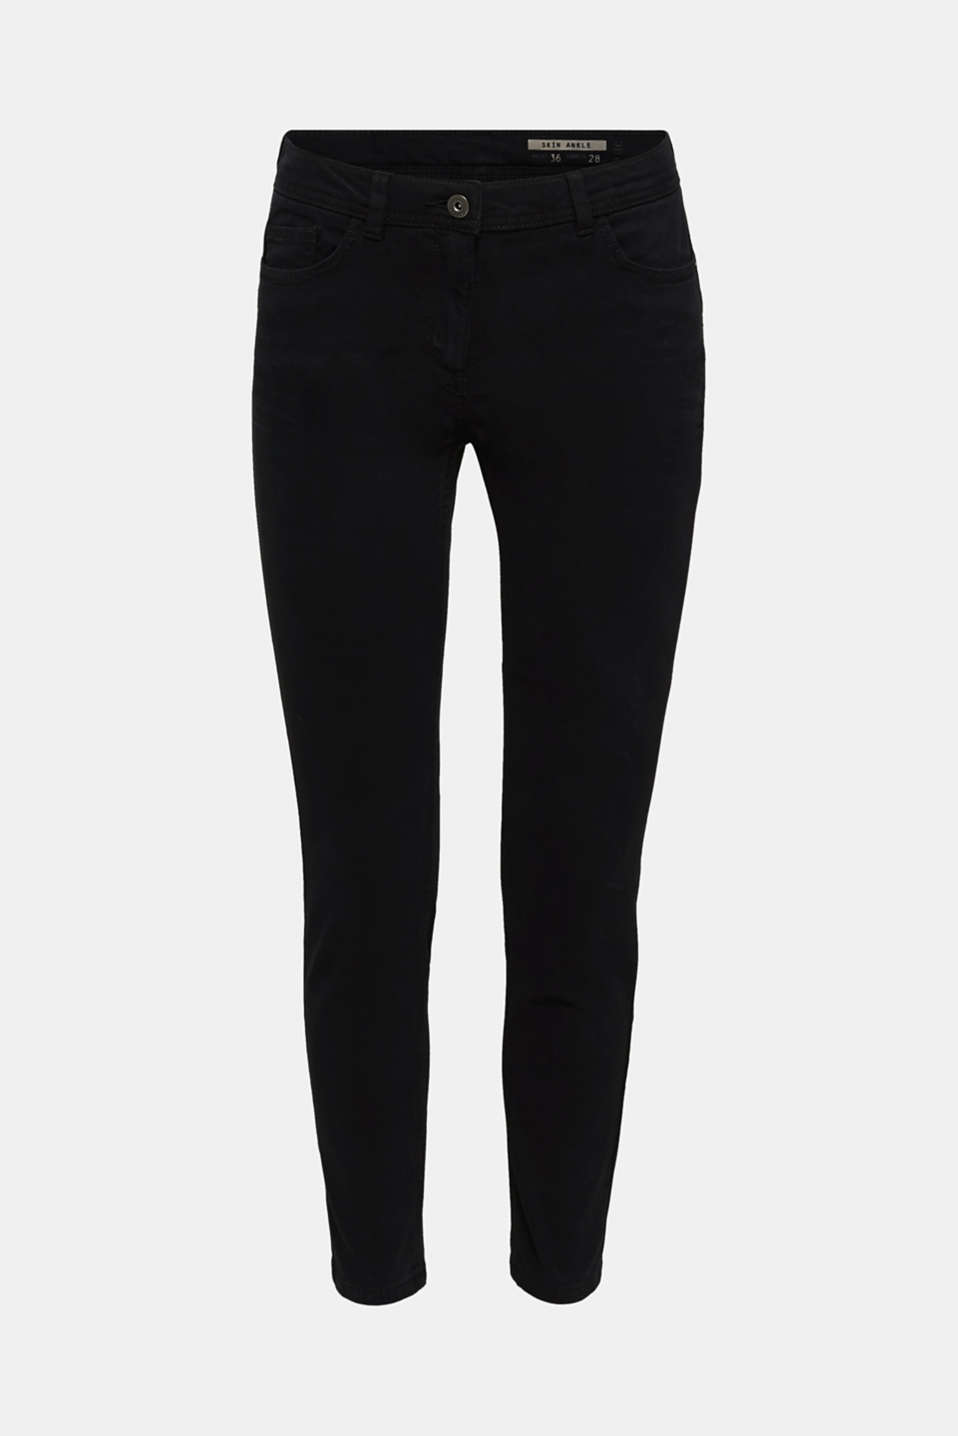 Ankle-length trousers in a garment-washed finish with organic cotton, BLACK, detail image number 6